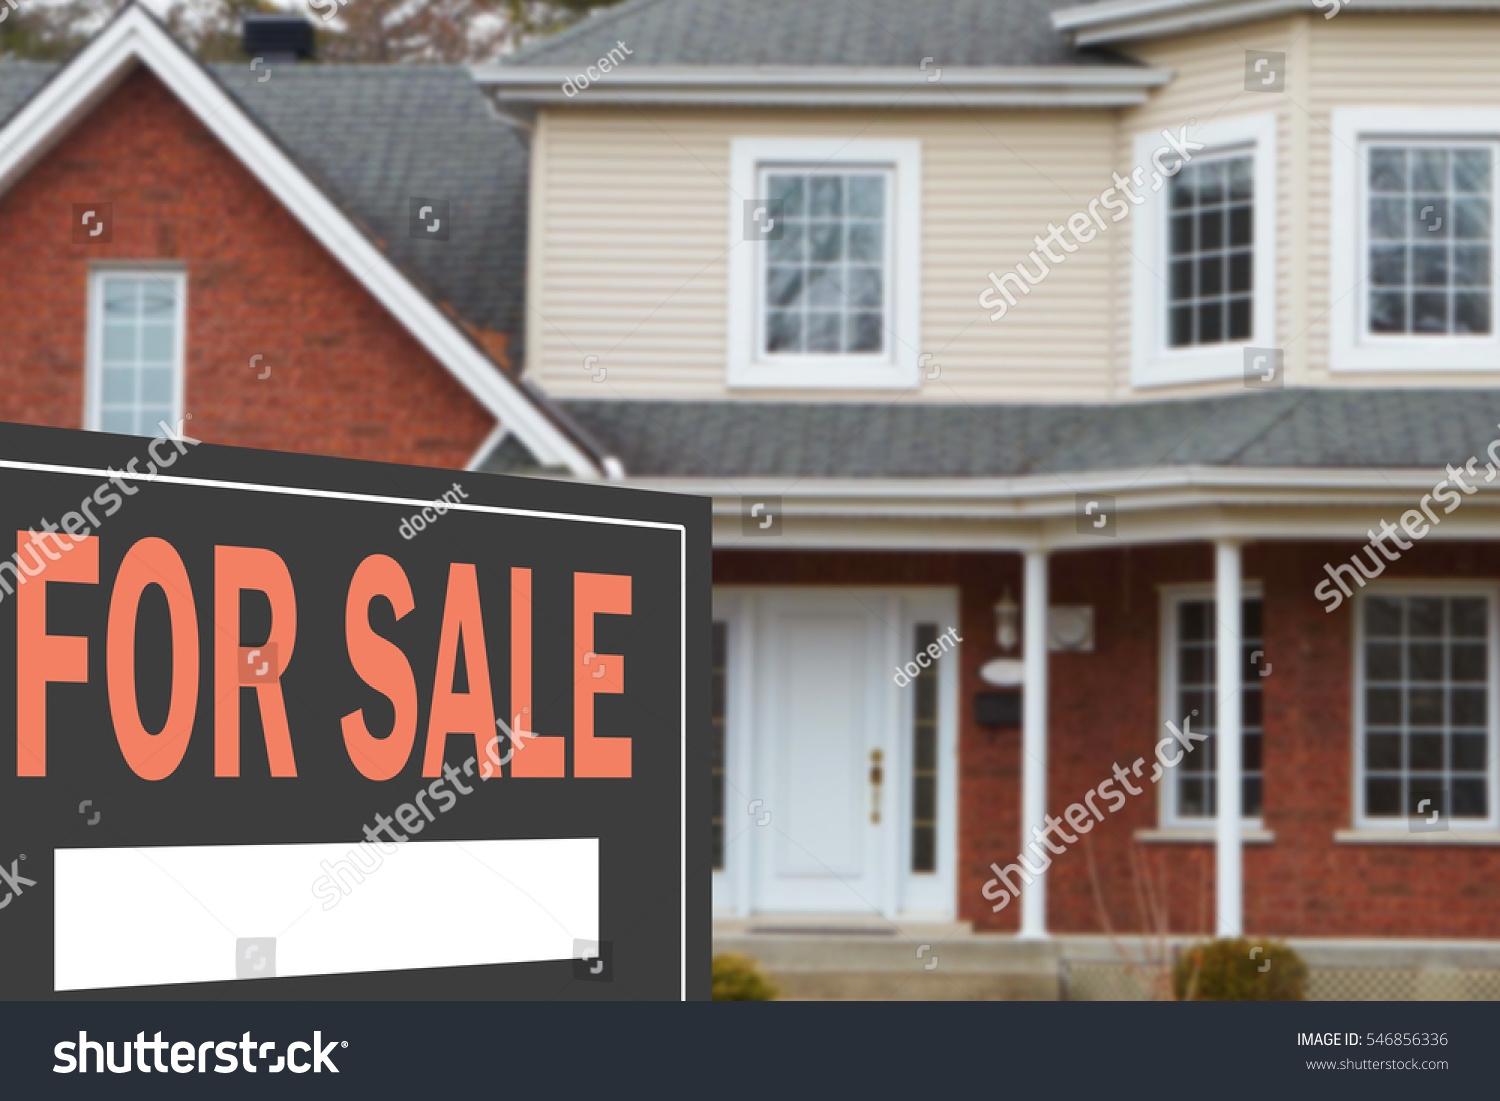 Home for sale. Sign in front of beautiful new home #546856336